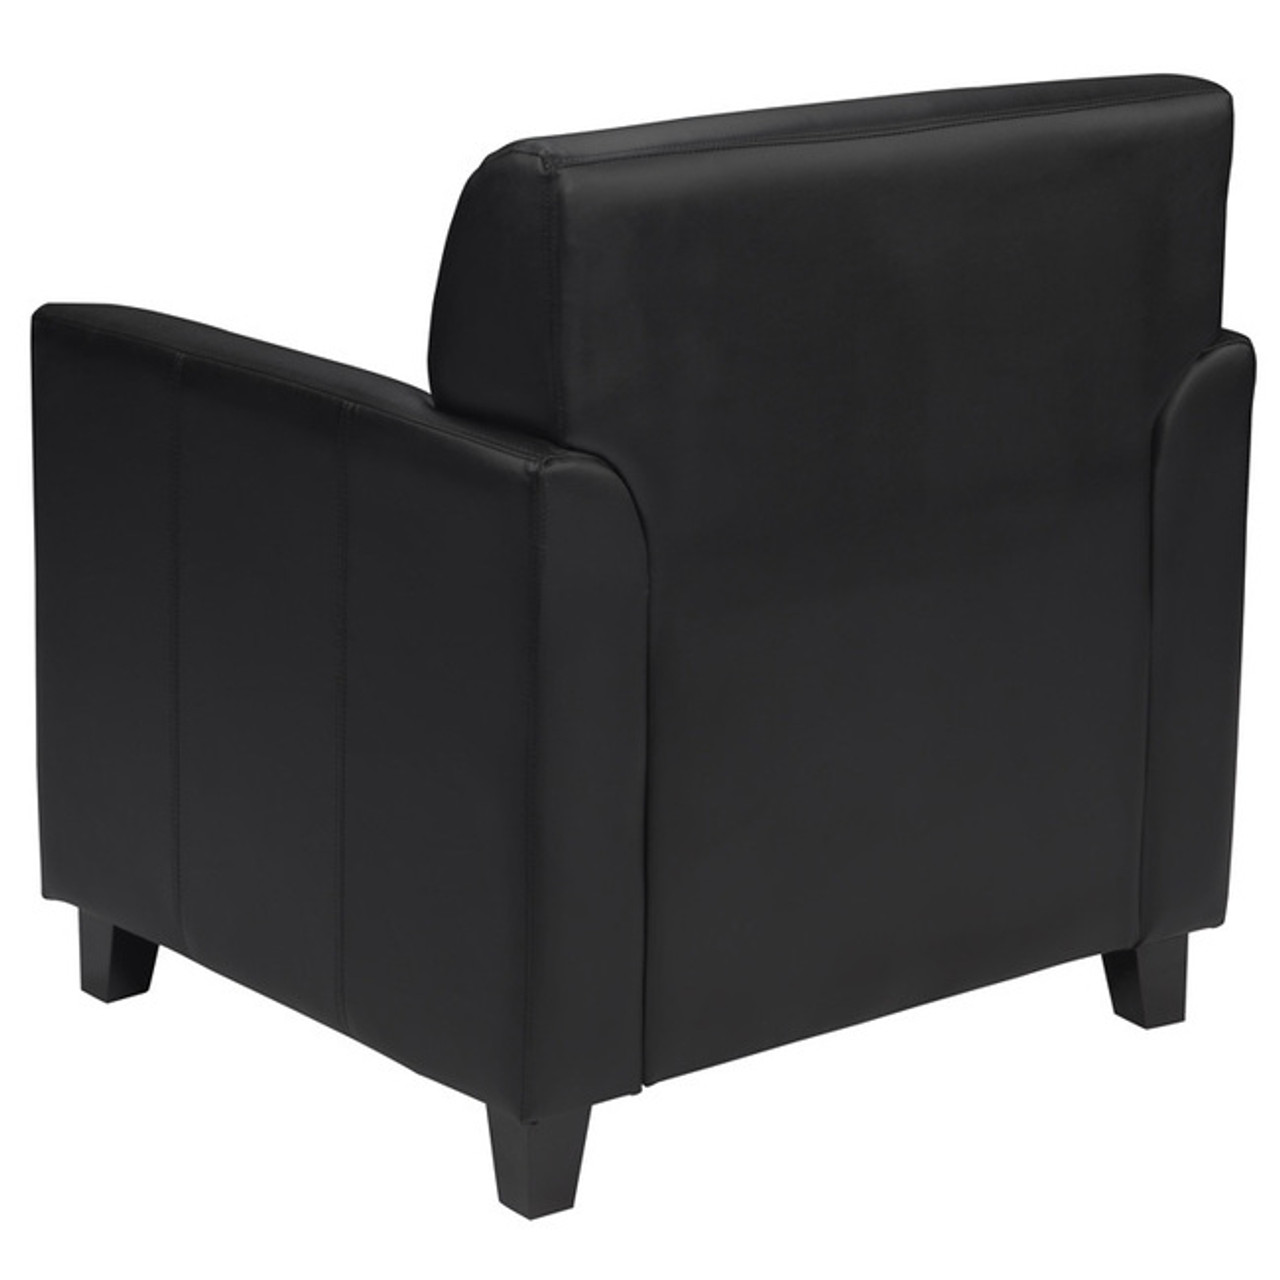 1pc Modern Leather Office Reception Chair, FF-0551-13